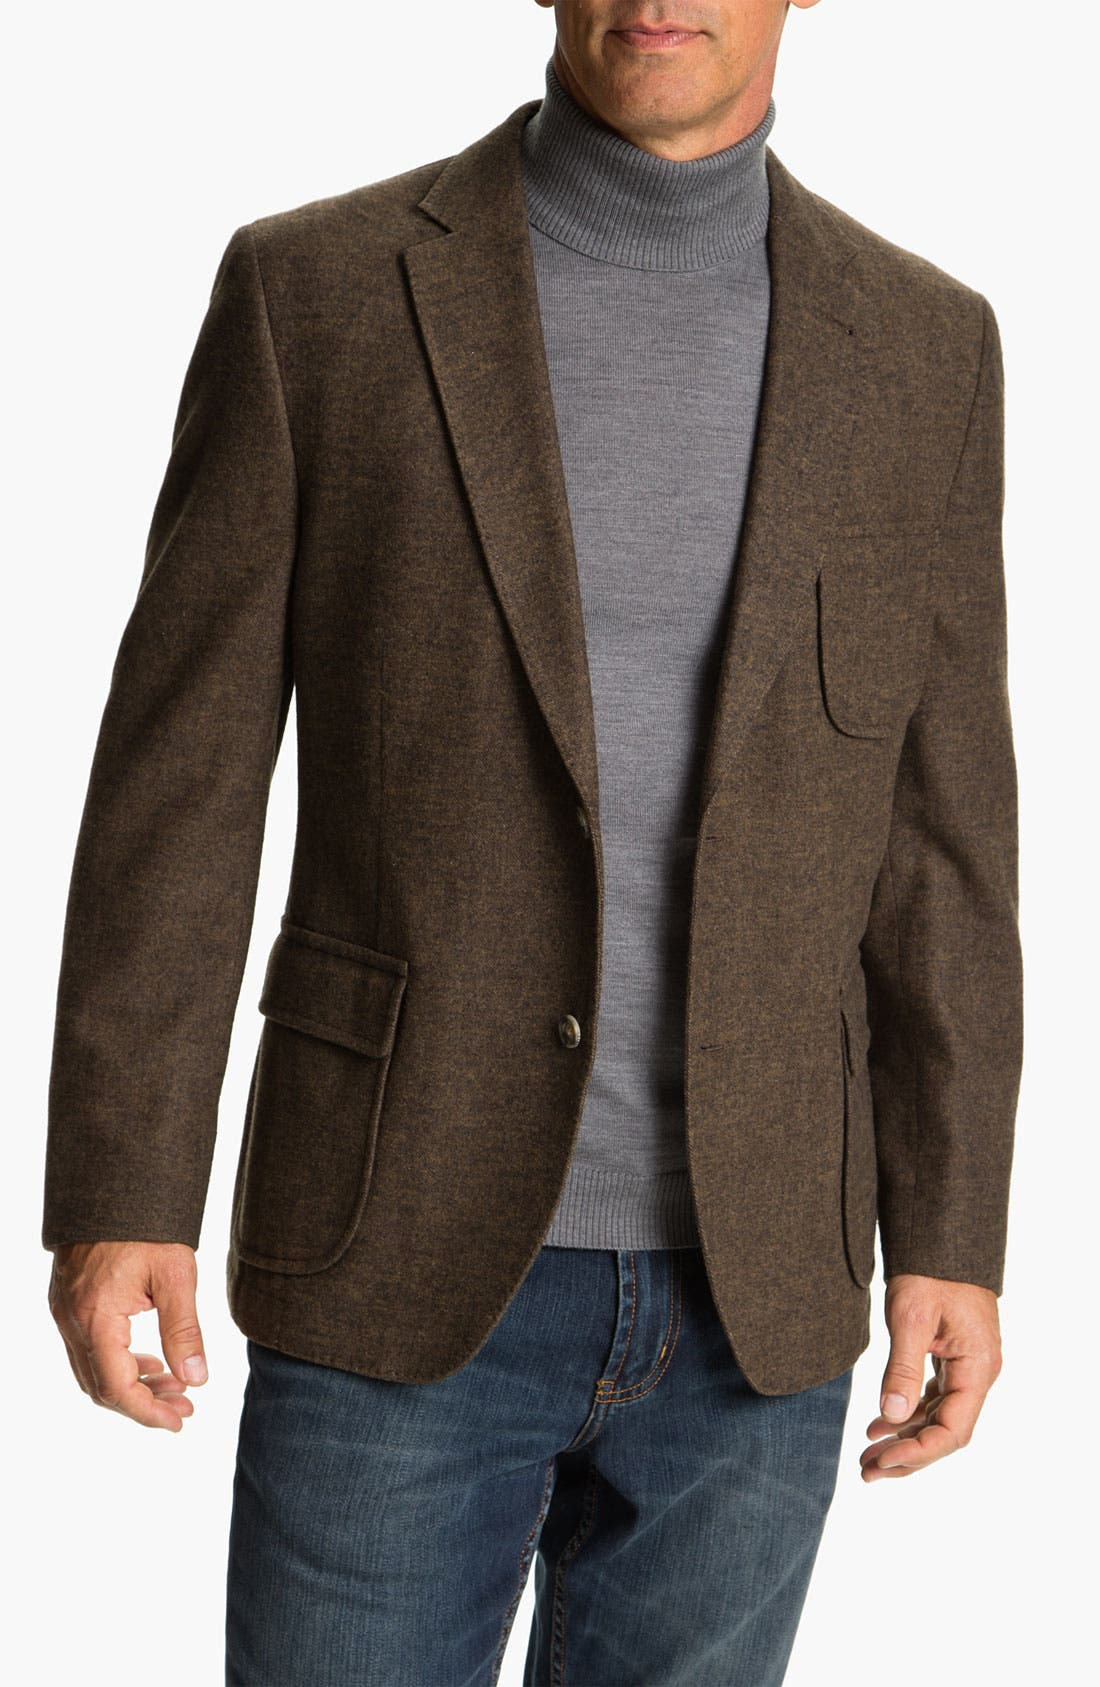 Alternate Image 1 Selected - Kroon 'Harrison' Wool & Cotton Blend  Sportcoat